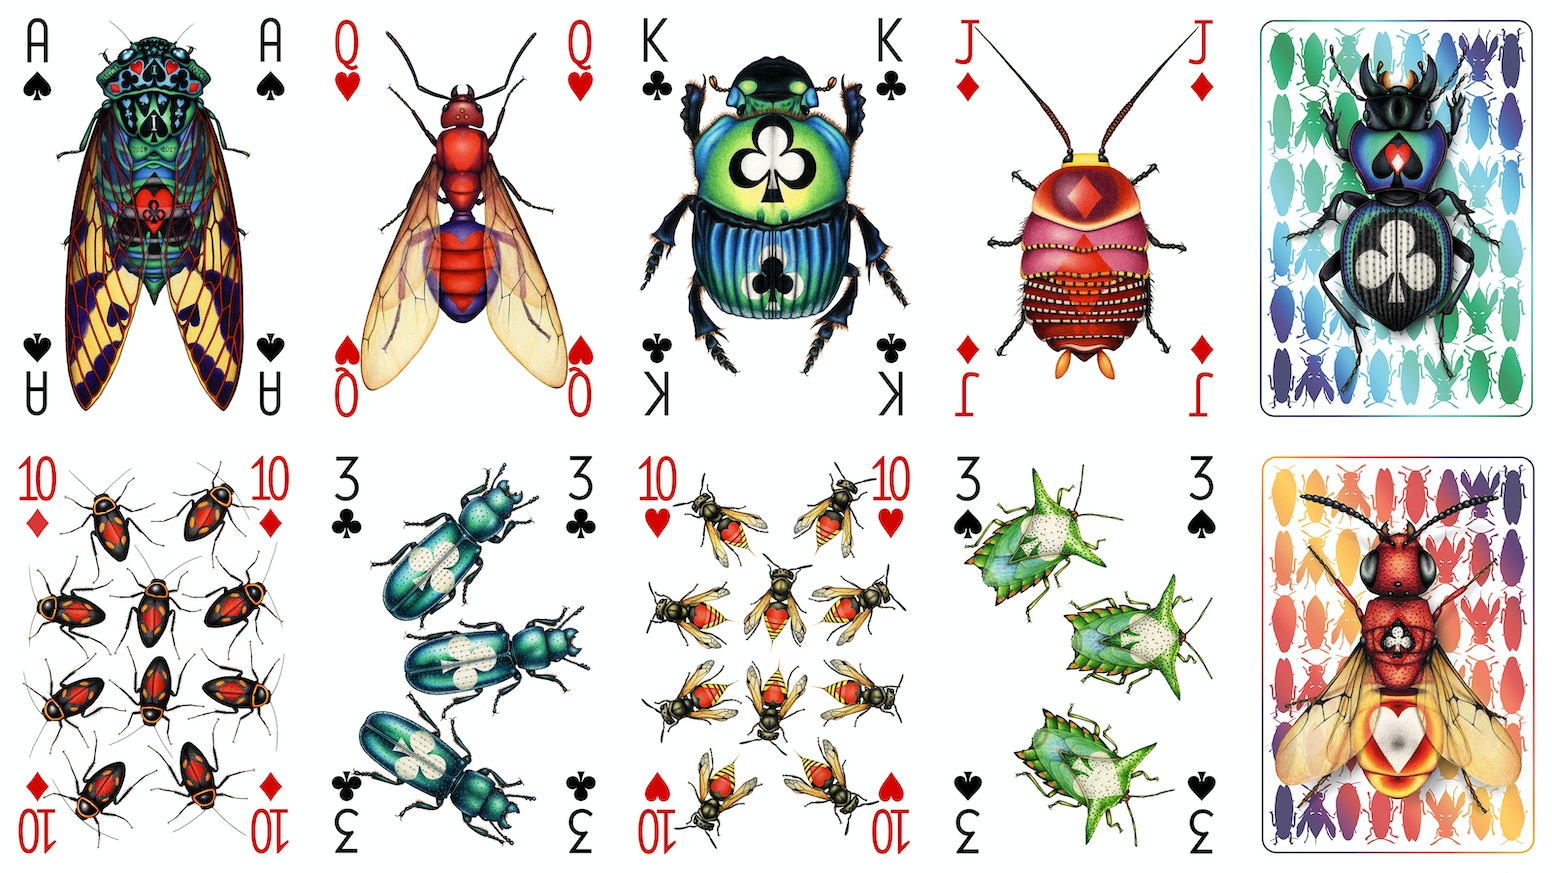 A highly detailed hand-drawn poker deck, imagining what might happen if insects formed a symbiotic relationship with card players